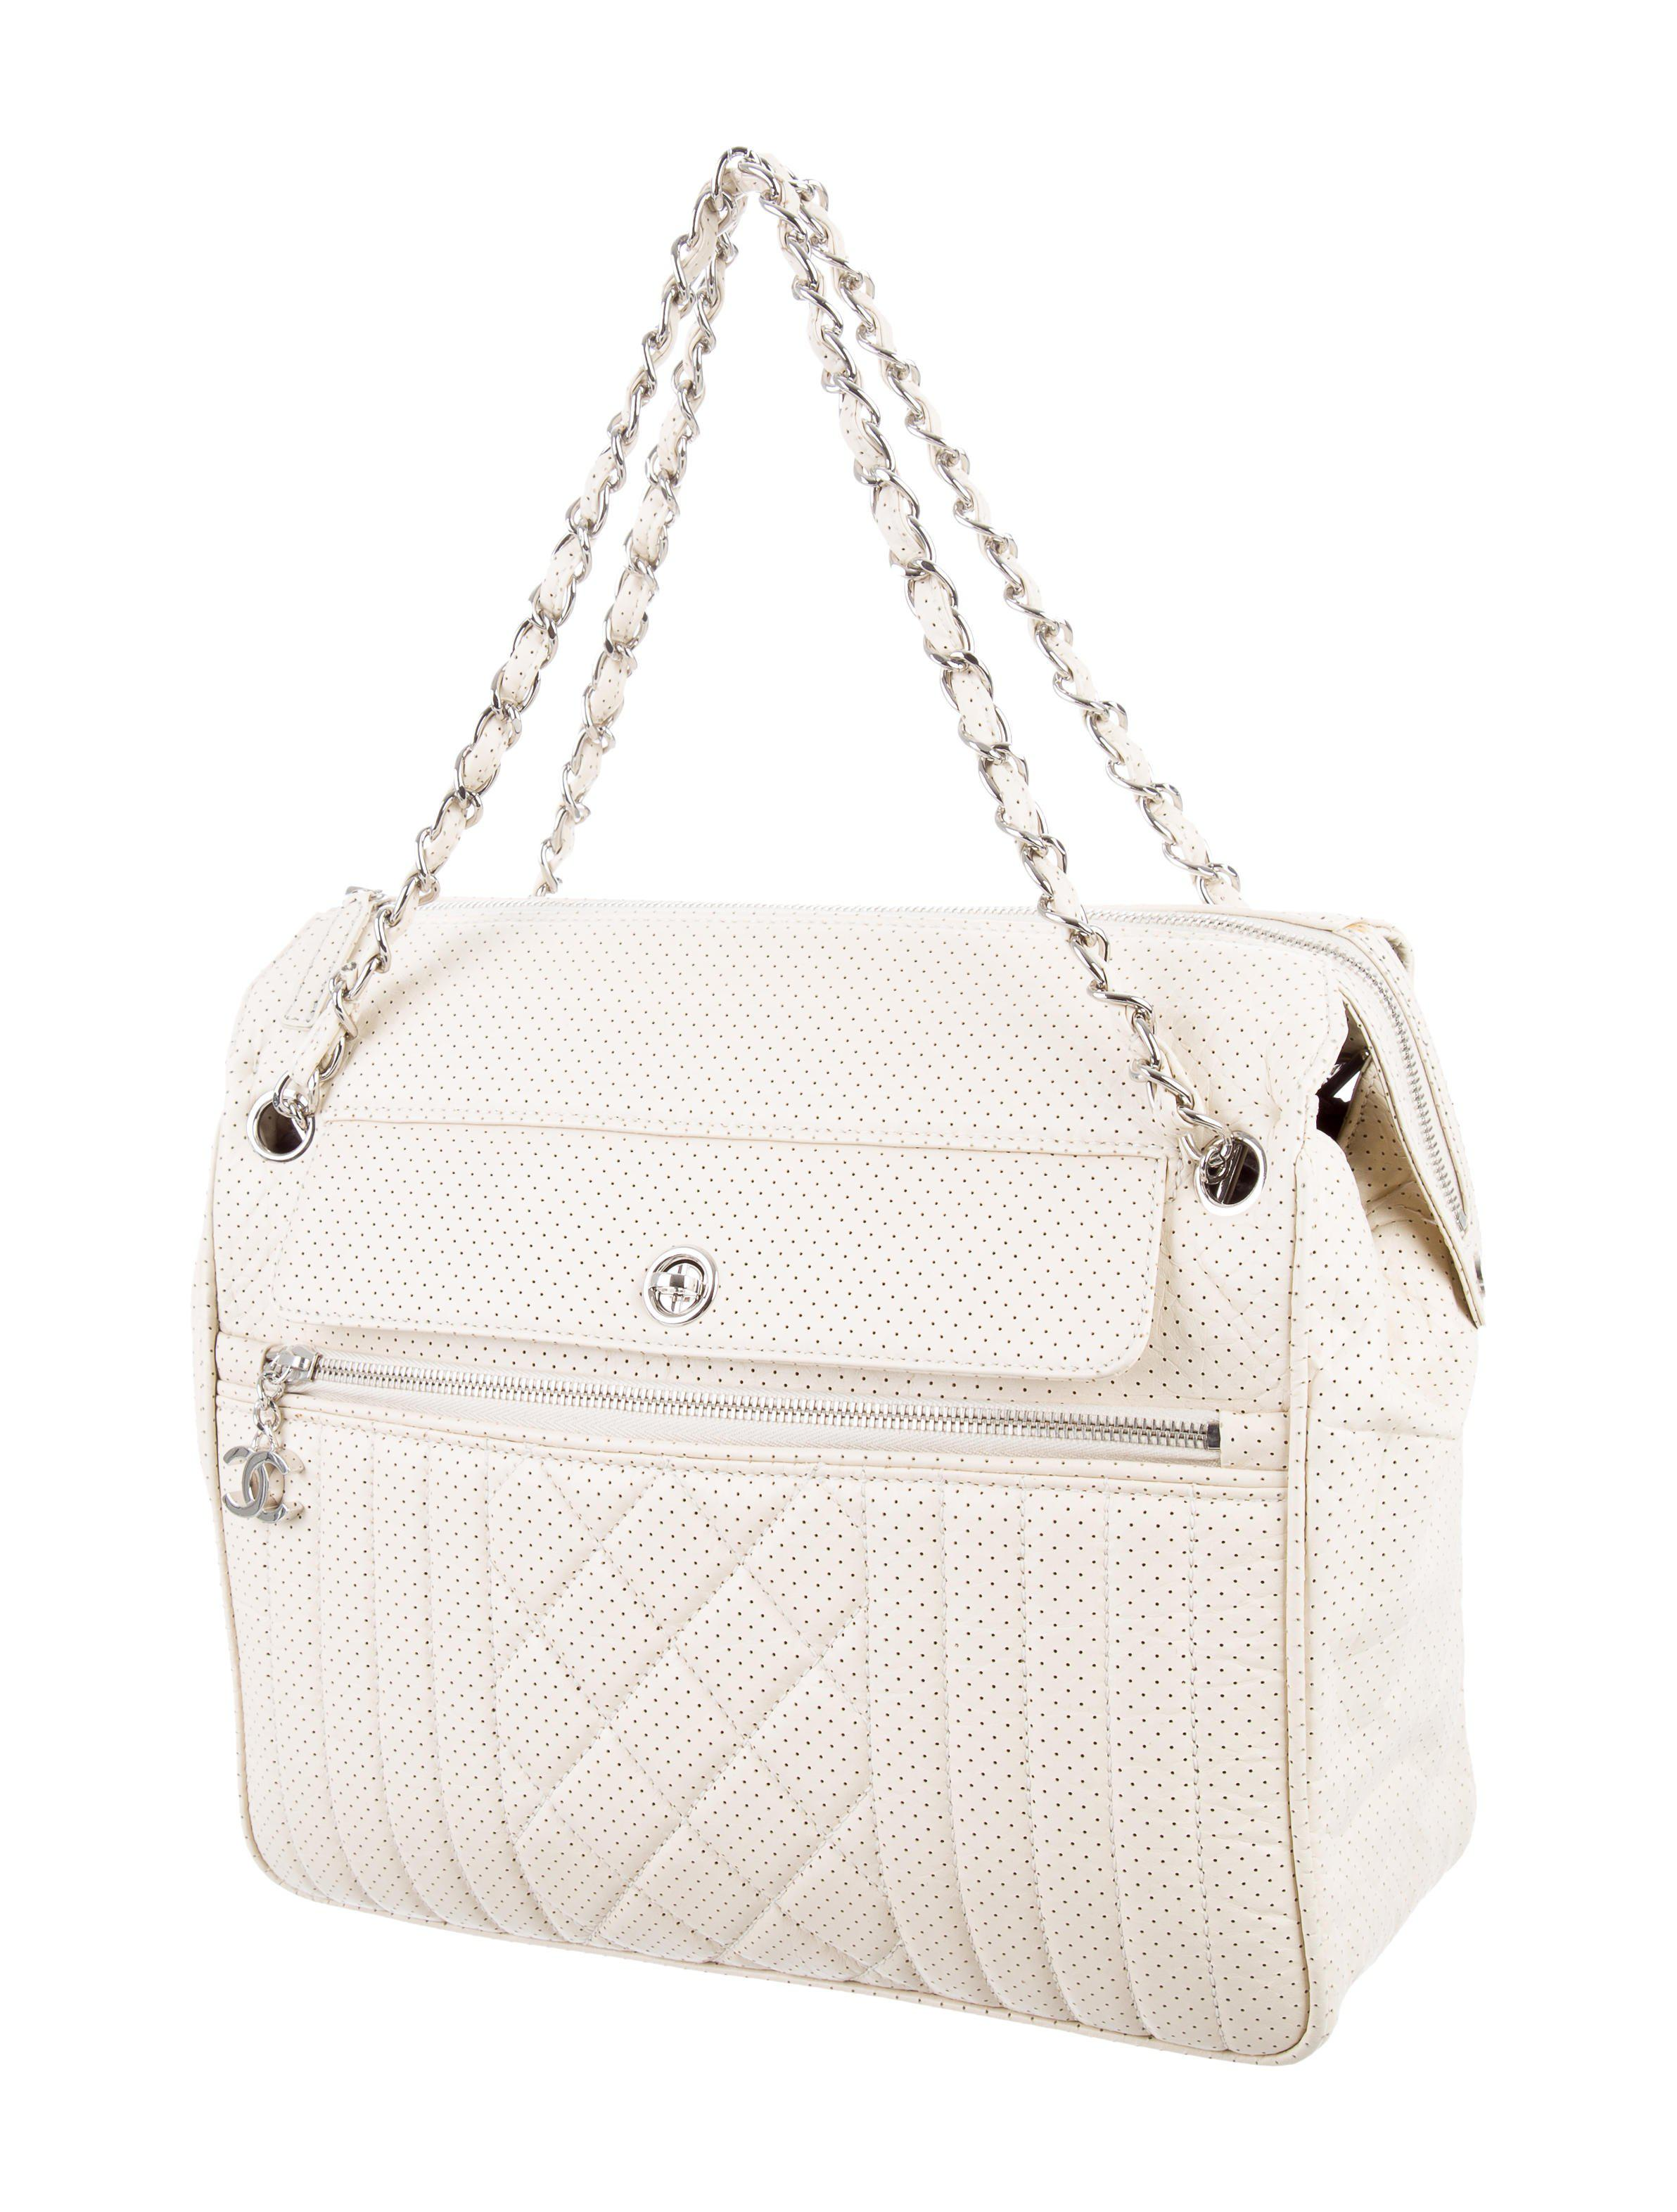 5ed4af0fbc76 Lyst - Chanel Perforated 50's Bowler Bag Silver in Metallic